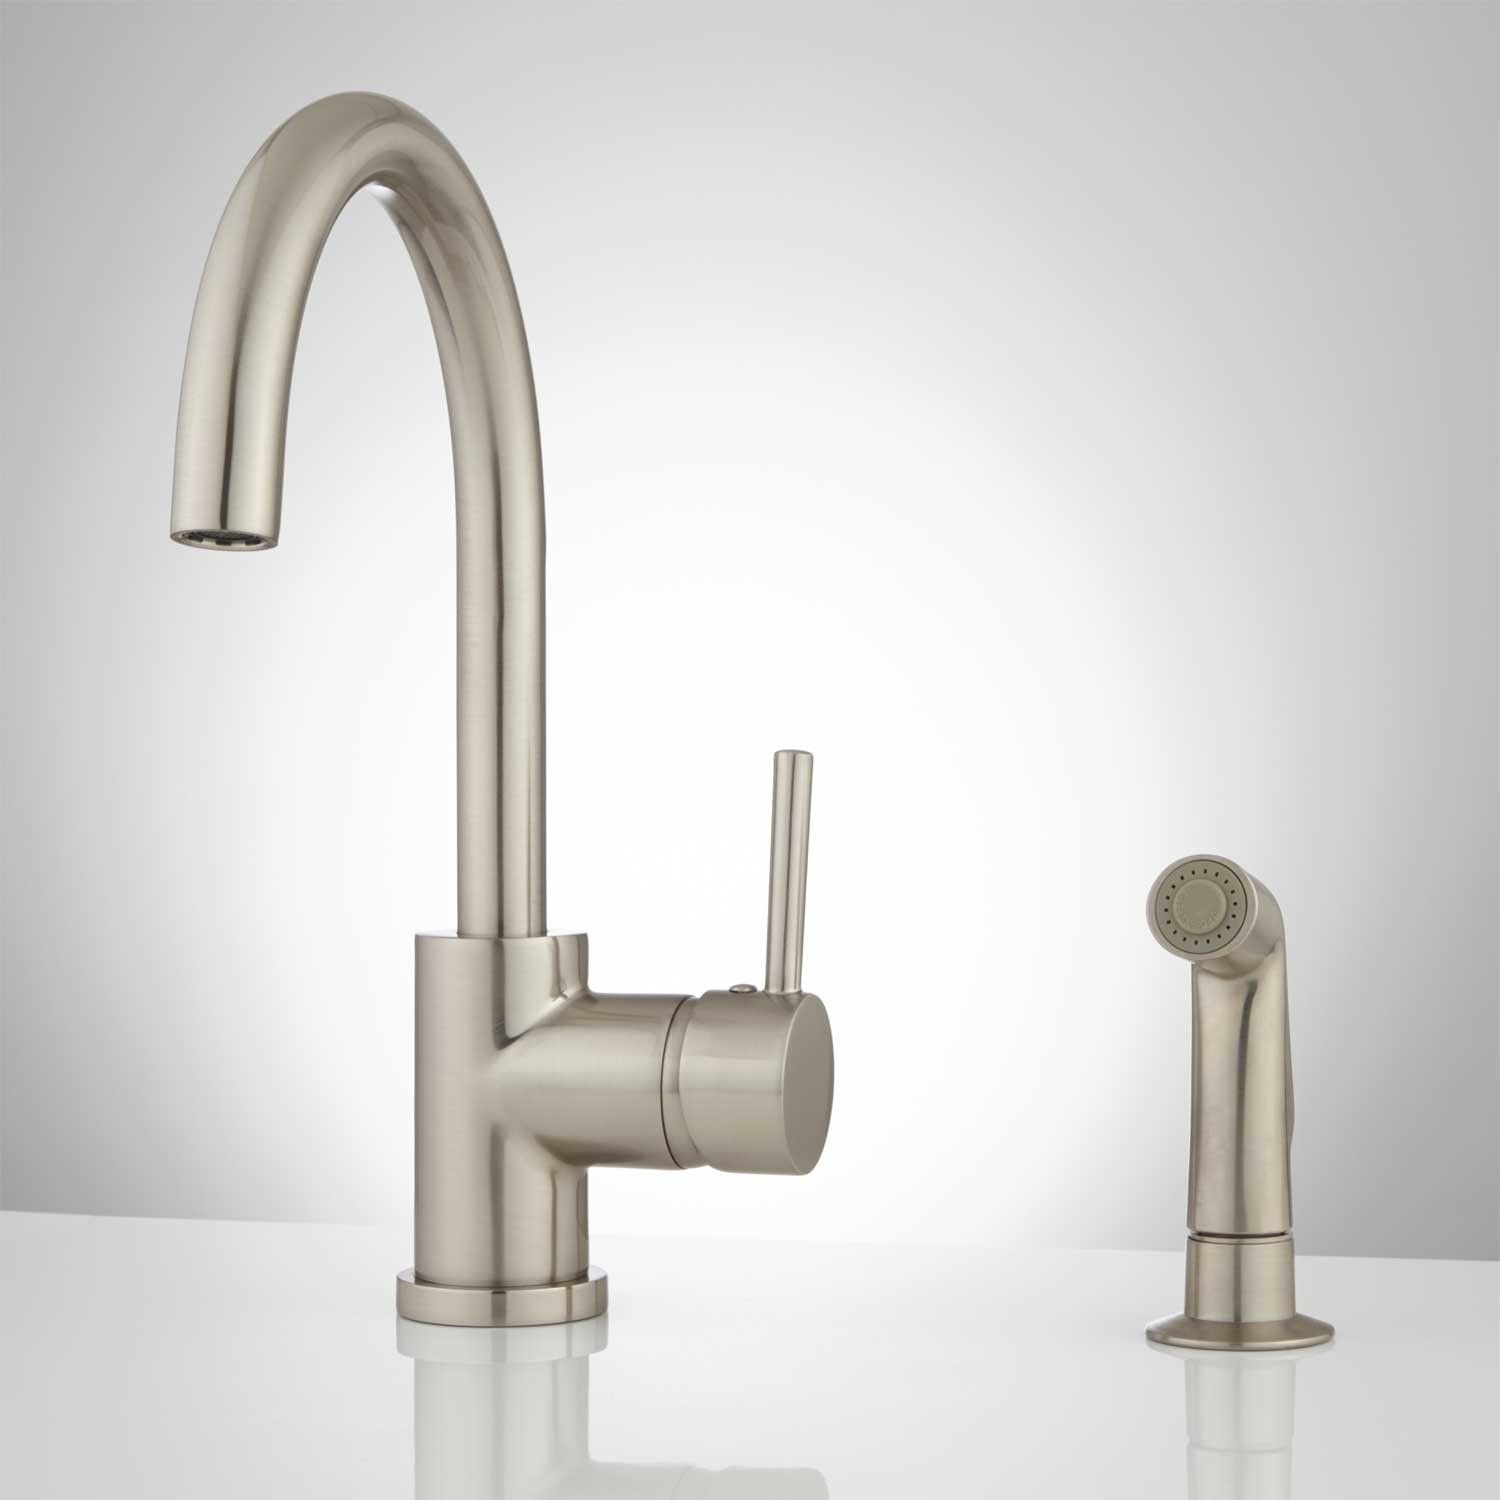 Lora+Gooseneck+Single+Handle+Kitchen+Faucet+with+Side+Spray ...